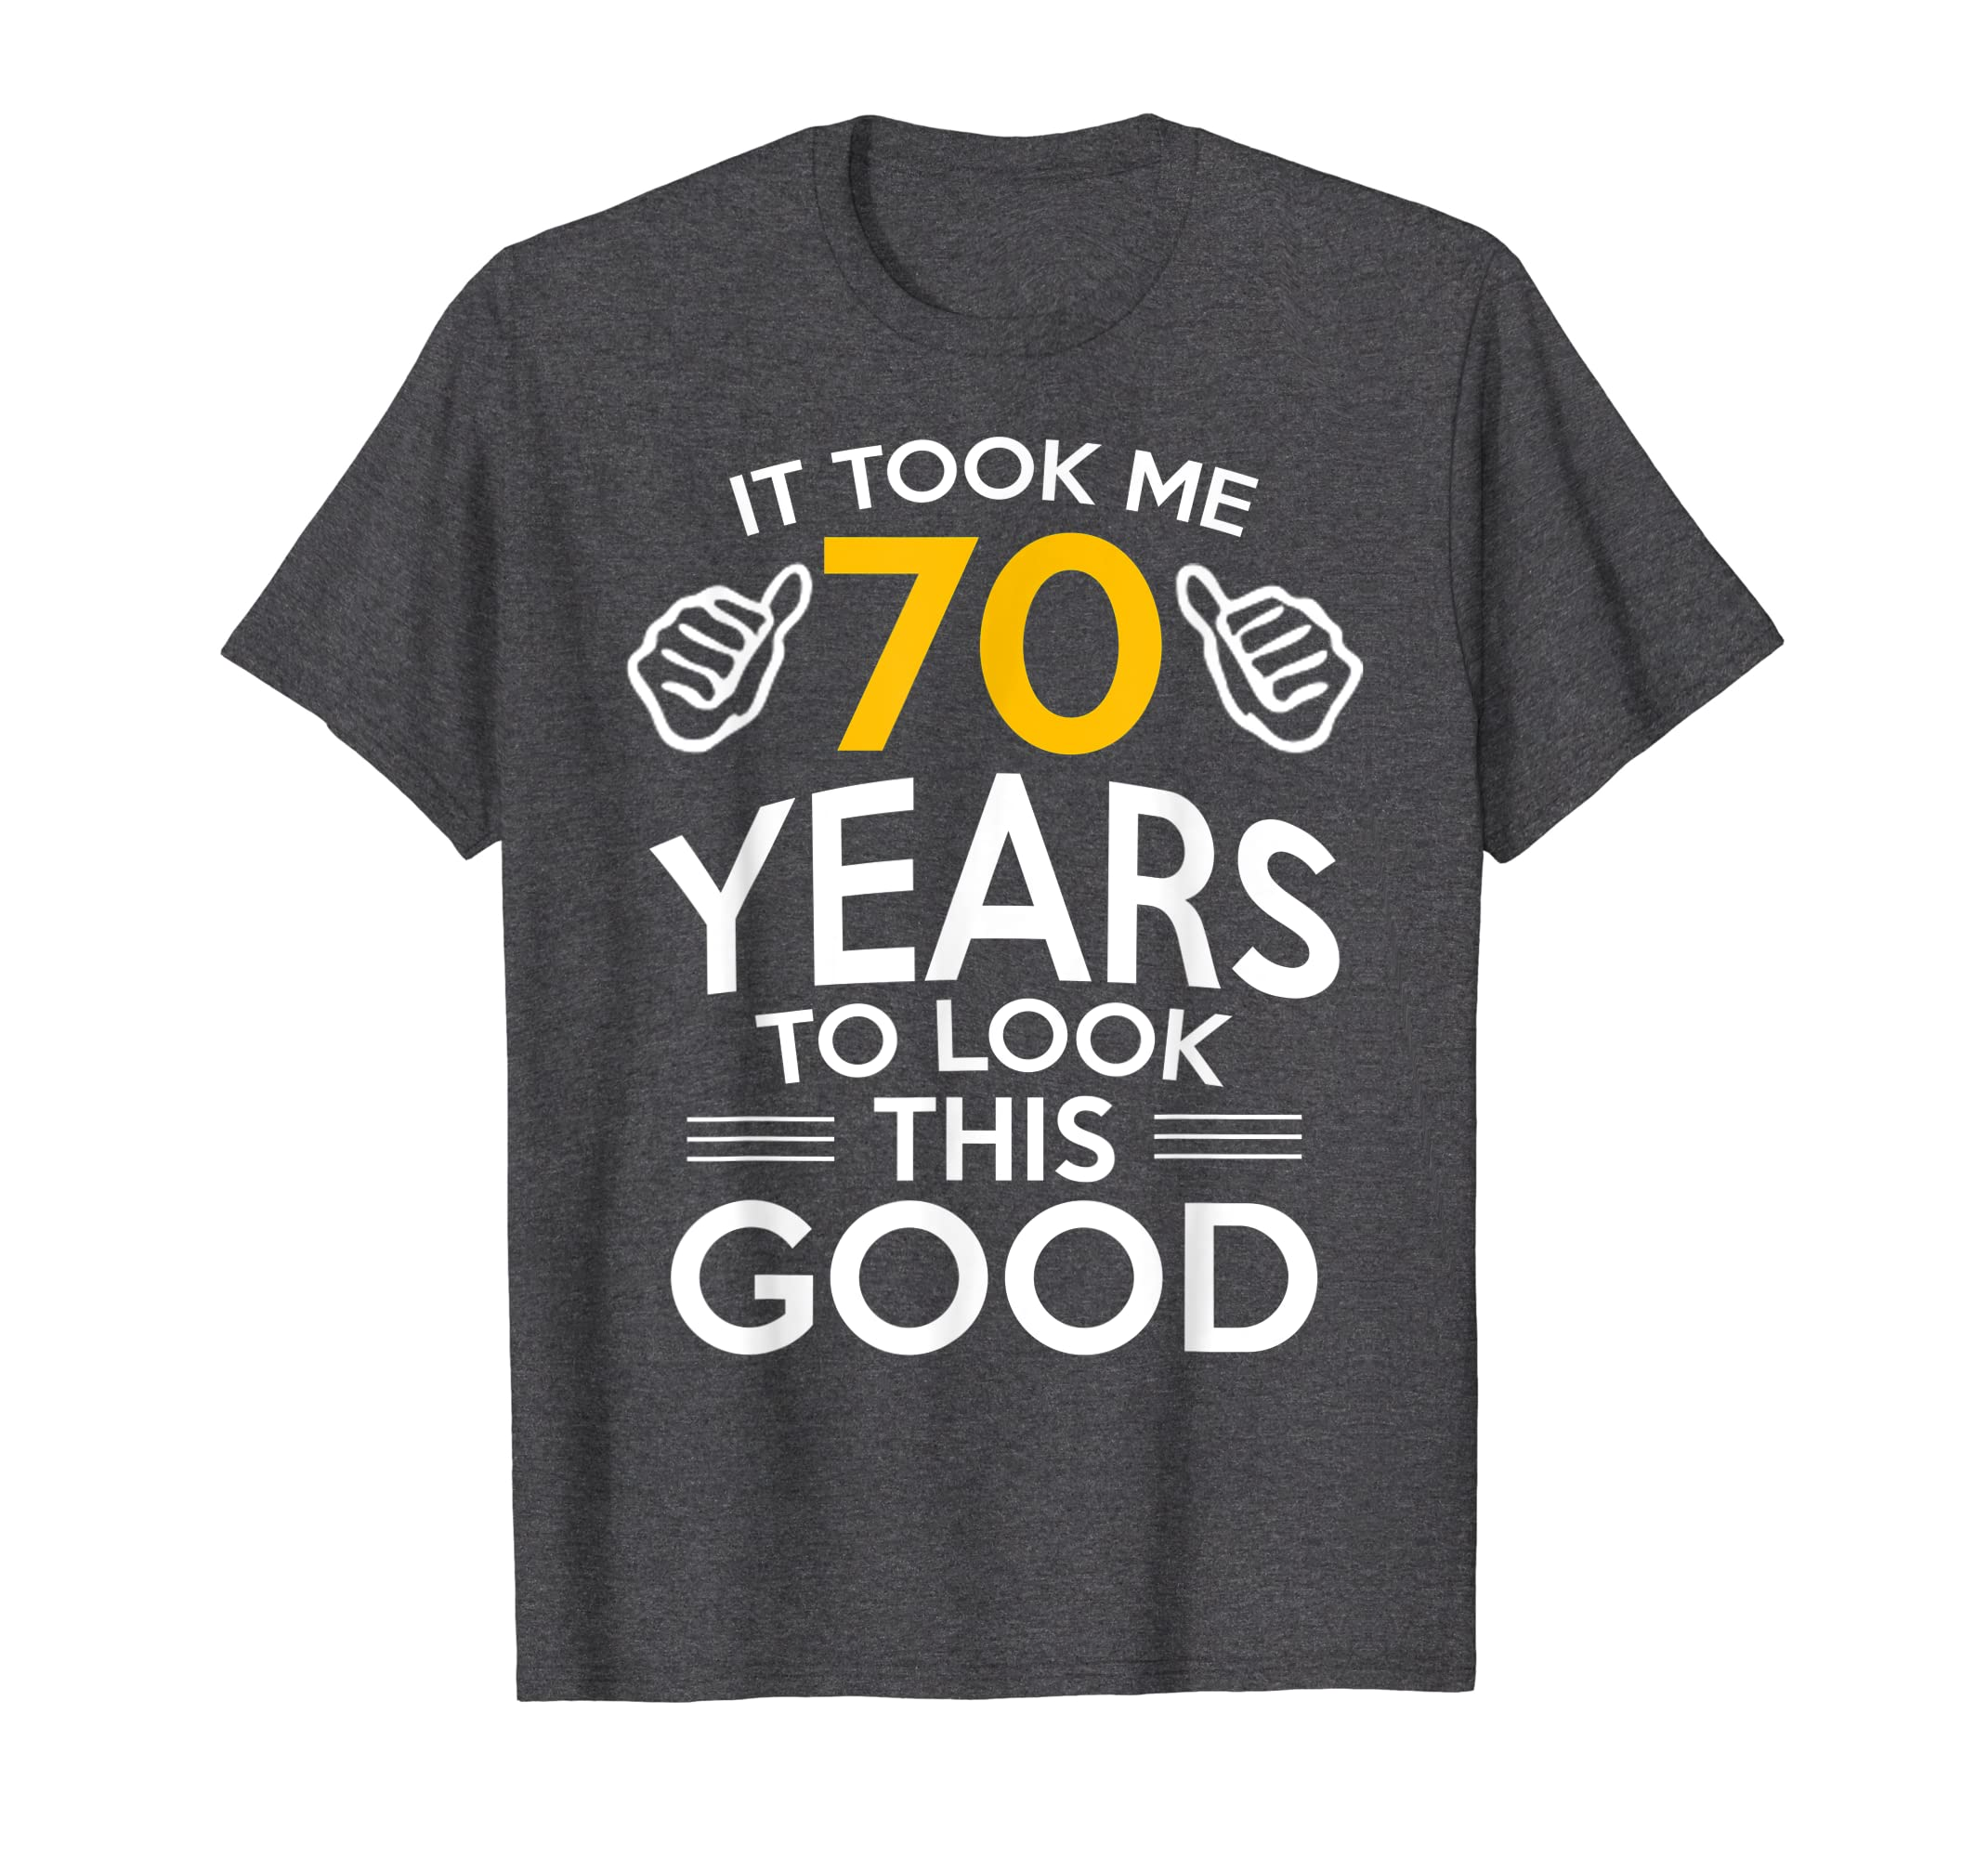 70th Birthday Gift, Took Me 70 Years – 70 Year Old T-Shirt